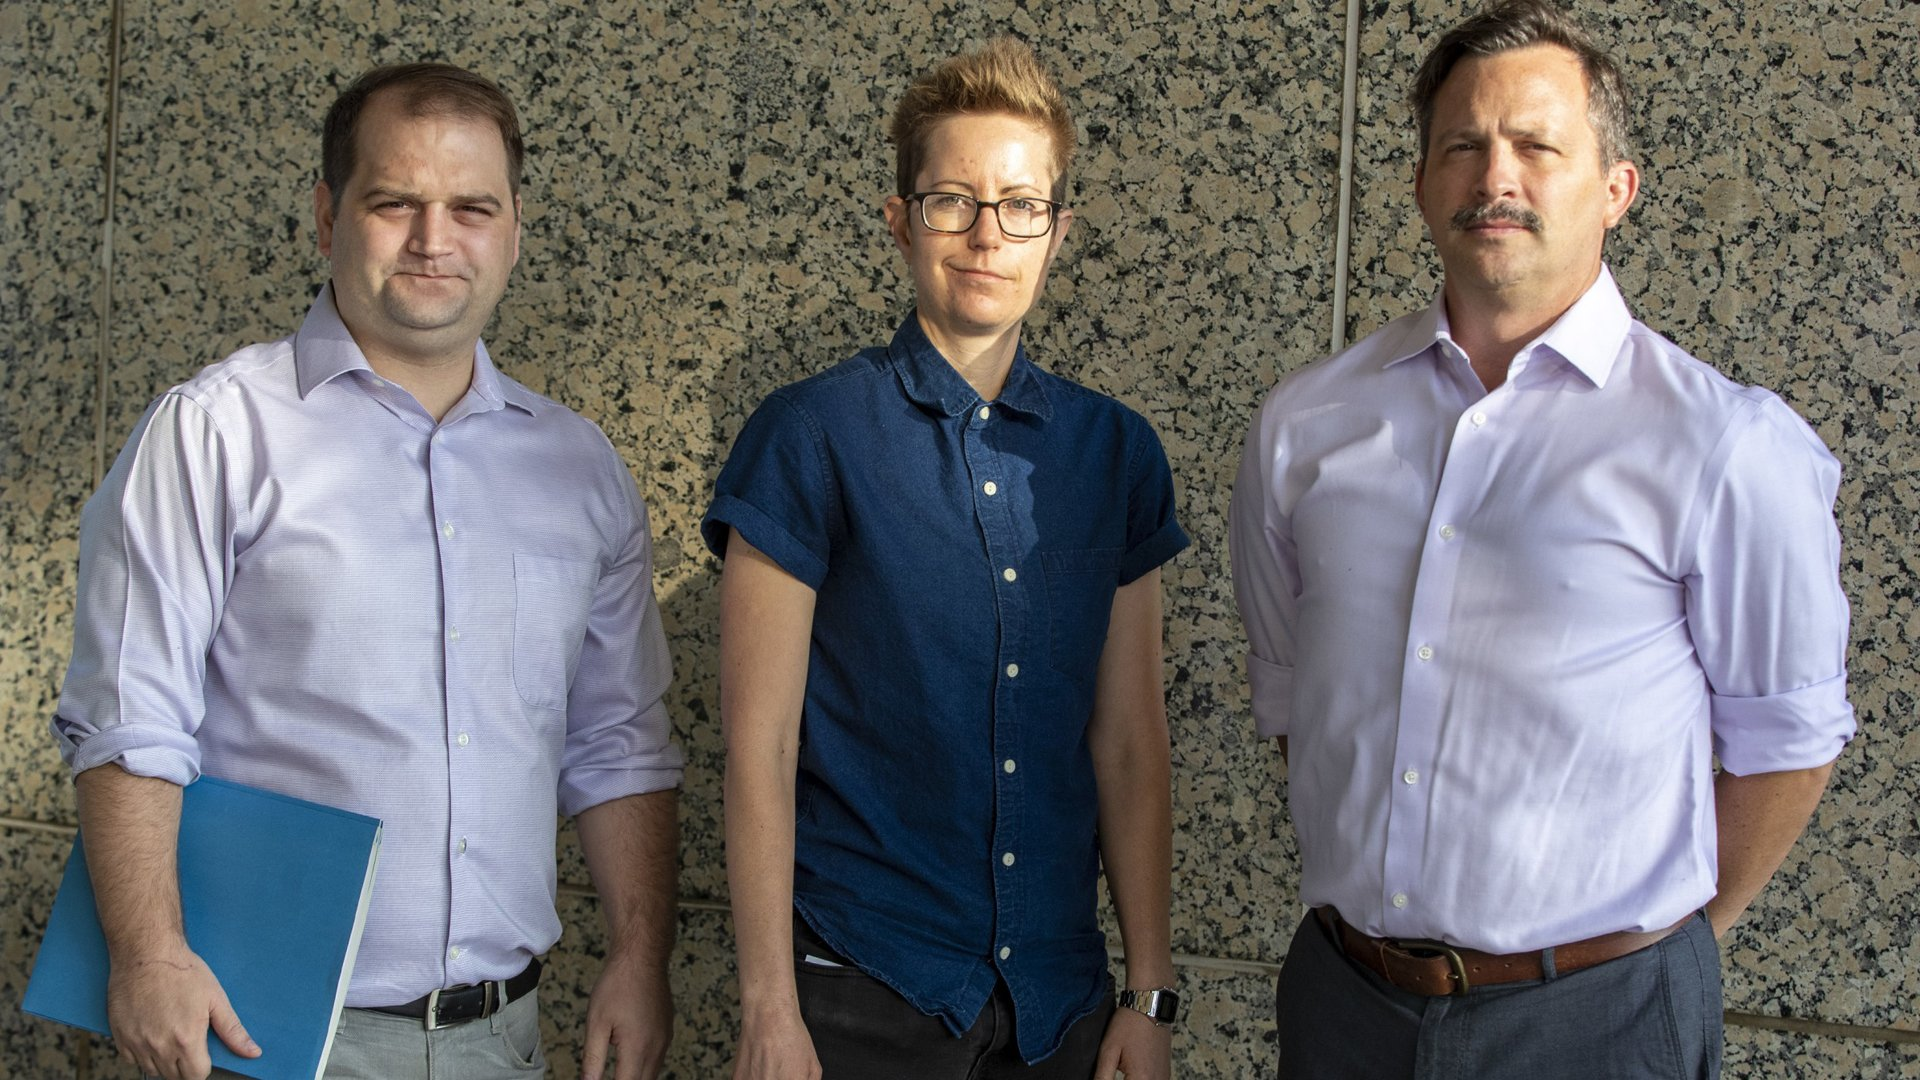 Andrew Carslaw, left, Sheri Wheeler and Michael Peck are former students of Video Symphony EnterTraining, a defunct for-profit film school.(Credit: Brian van der Brug / Los Angeles Times)